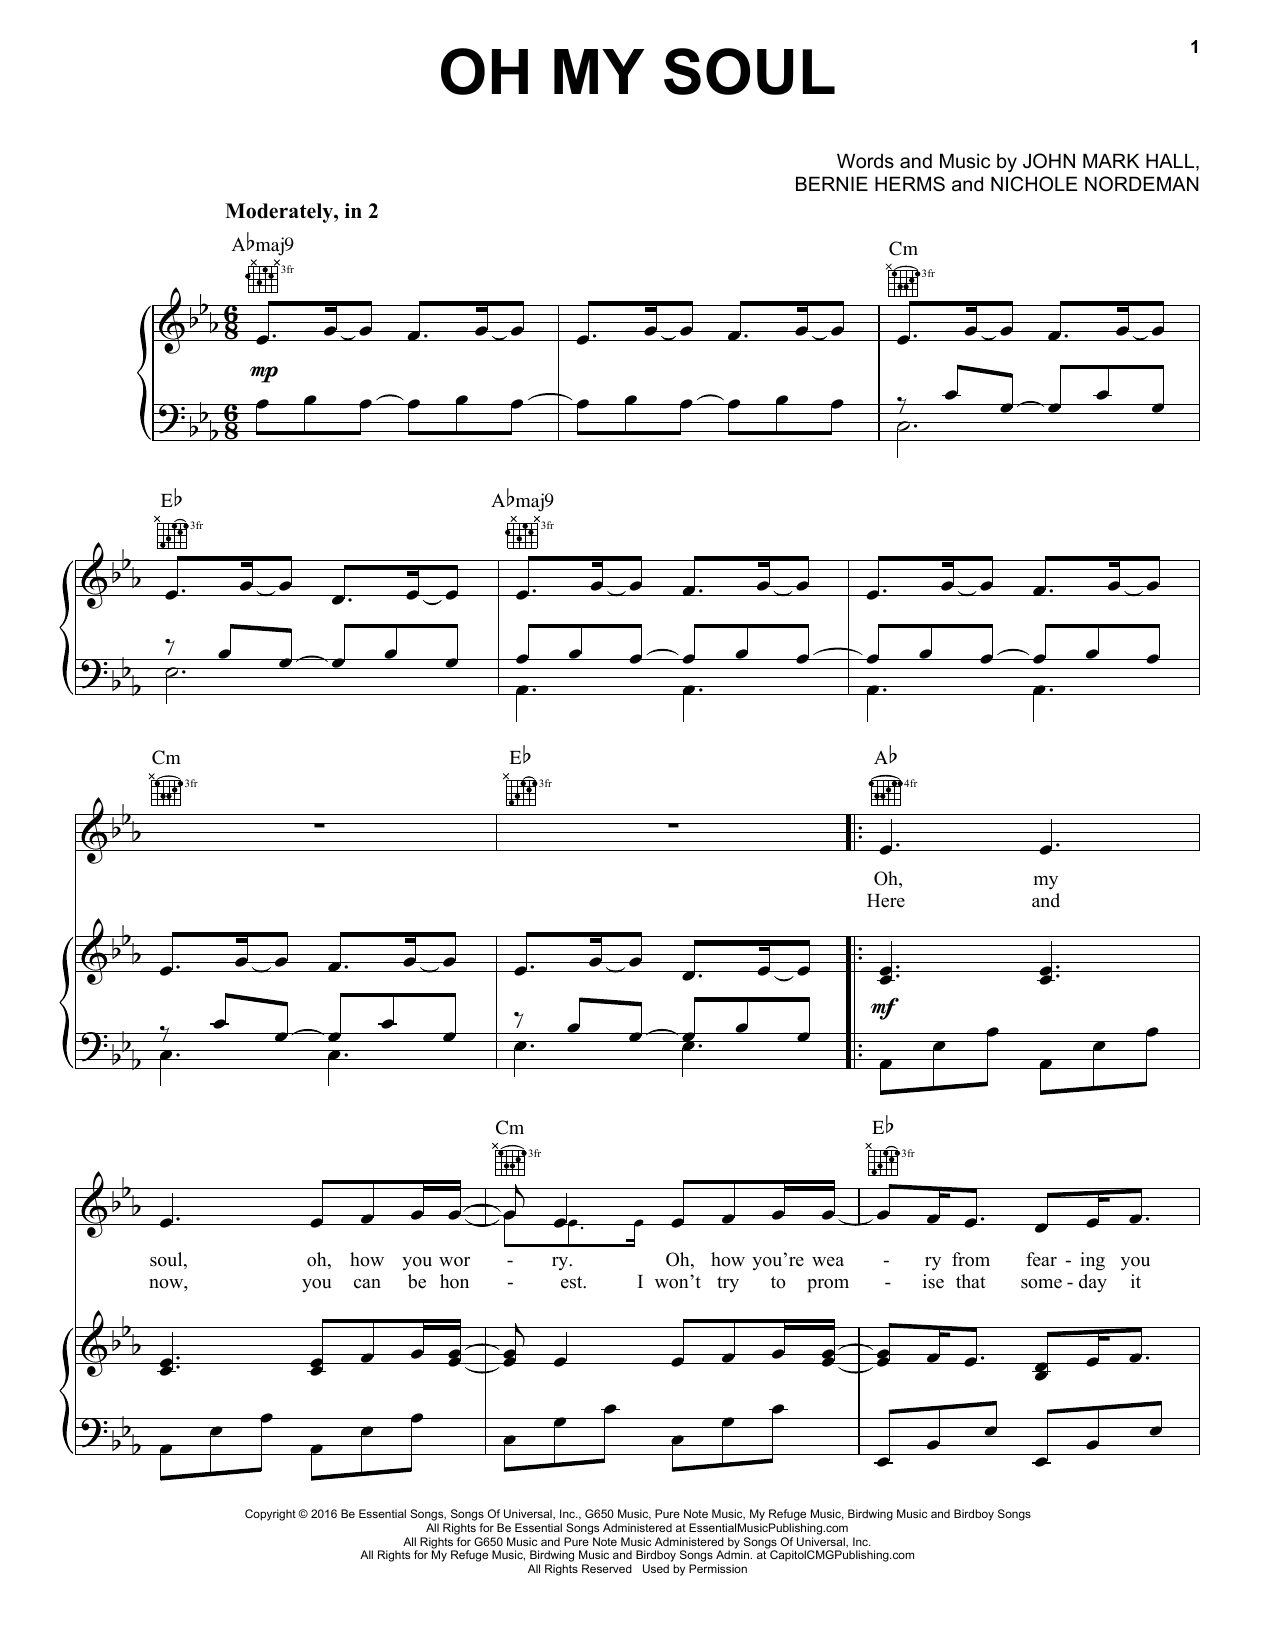 Casting Crowns 'Oh My Soul' Sheet Music Notes, Chords | Download Printable  Piano, Vocal & Guitar (Right-Hand Melody) - SKU: 176044